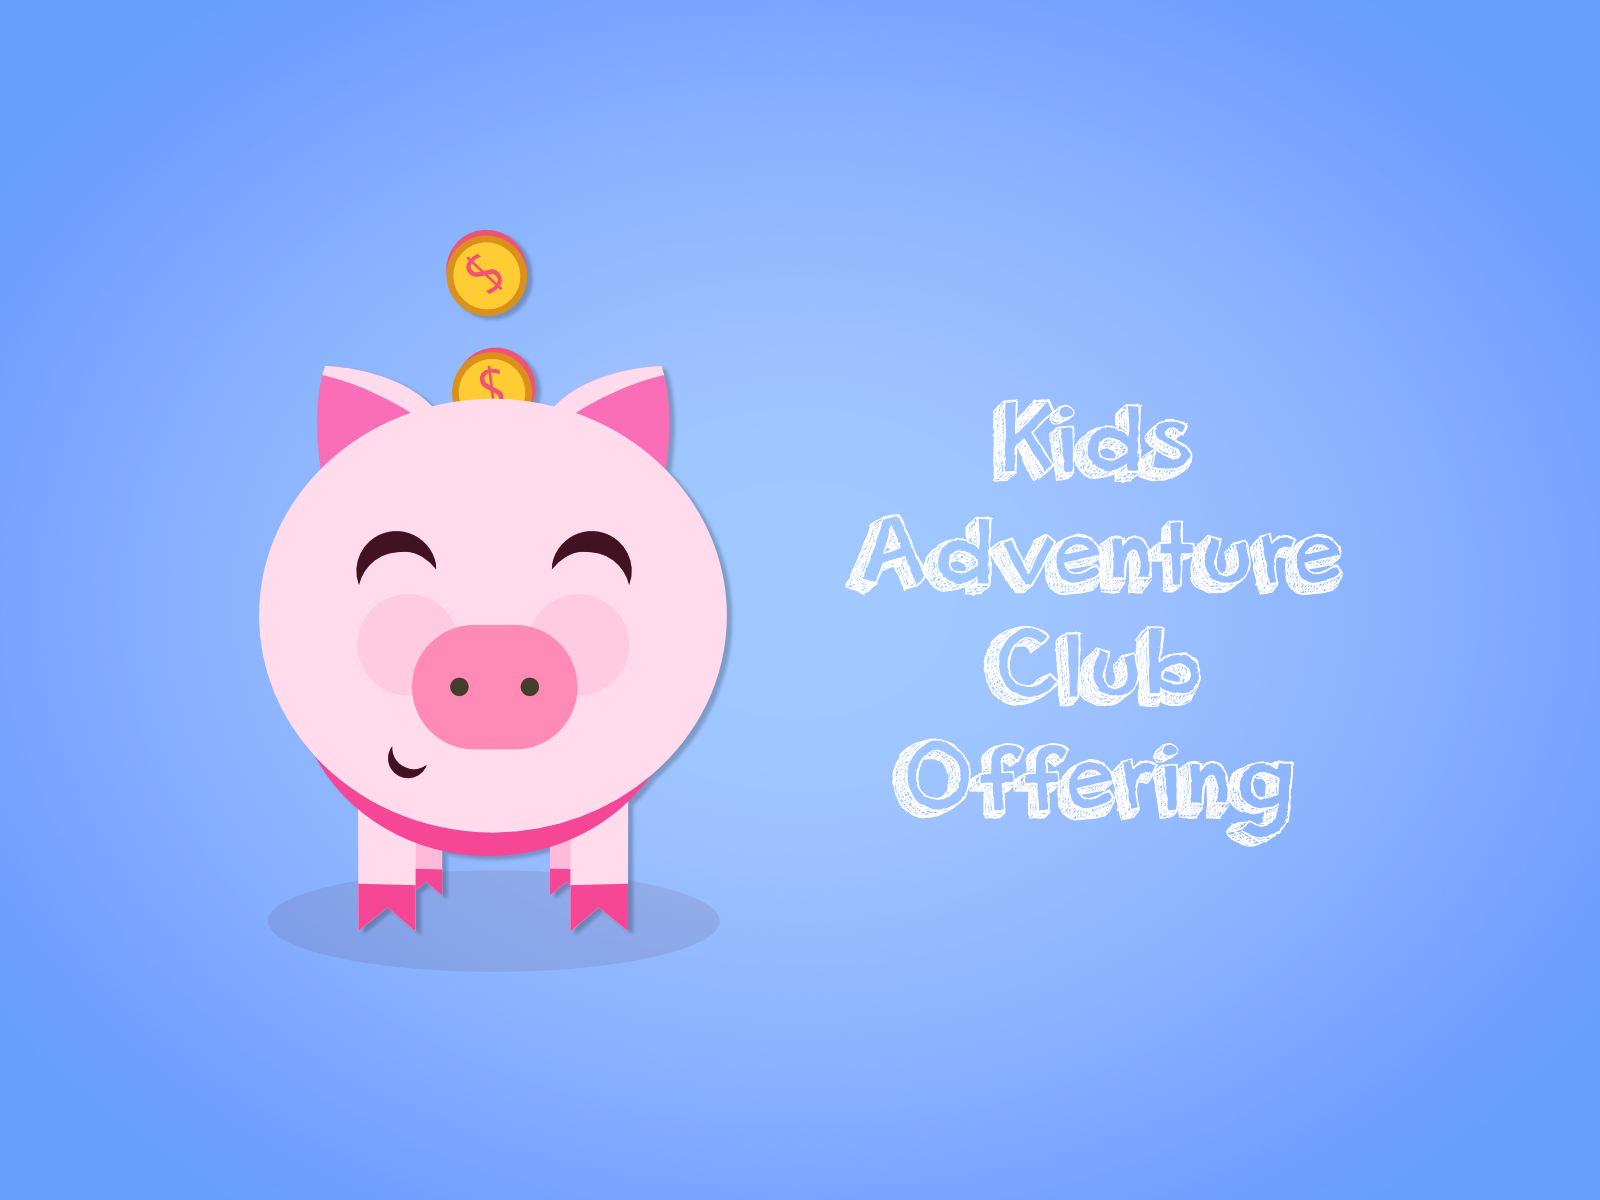 kids_club_offering